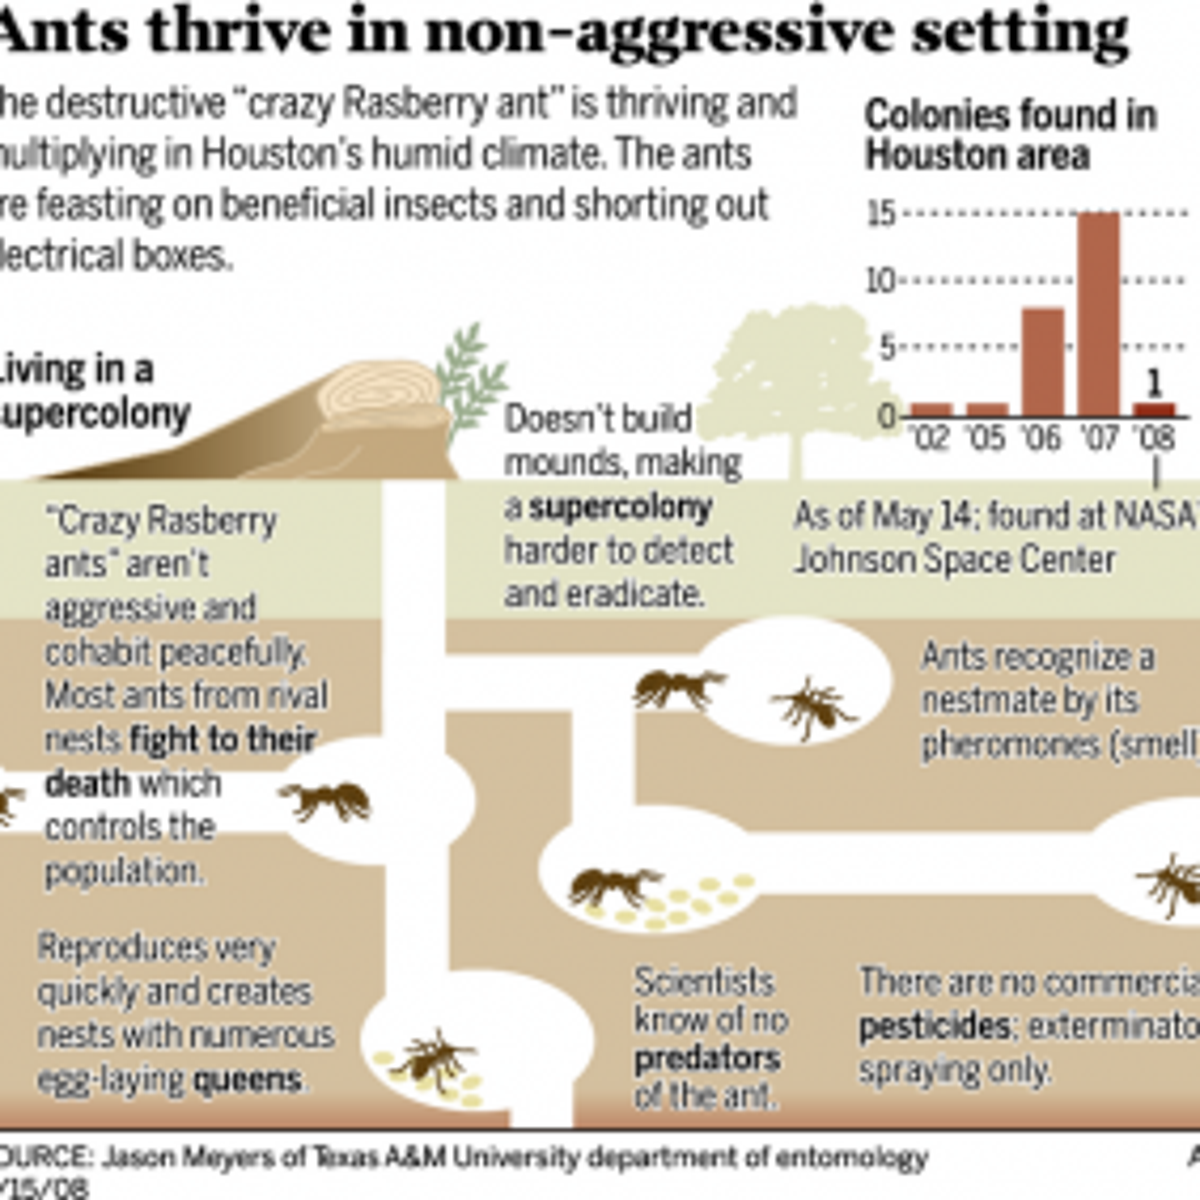 Crazy ants' by the billions are driving Houston area nuts